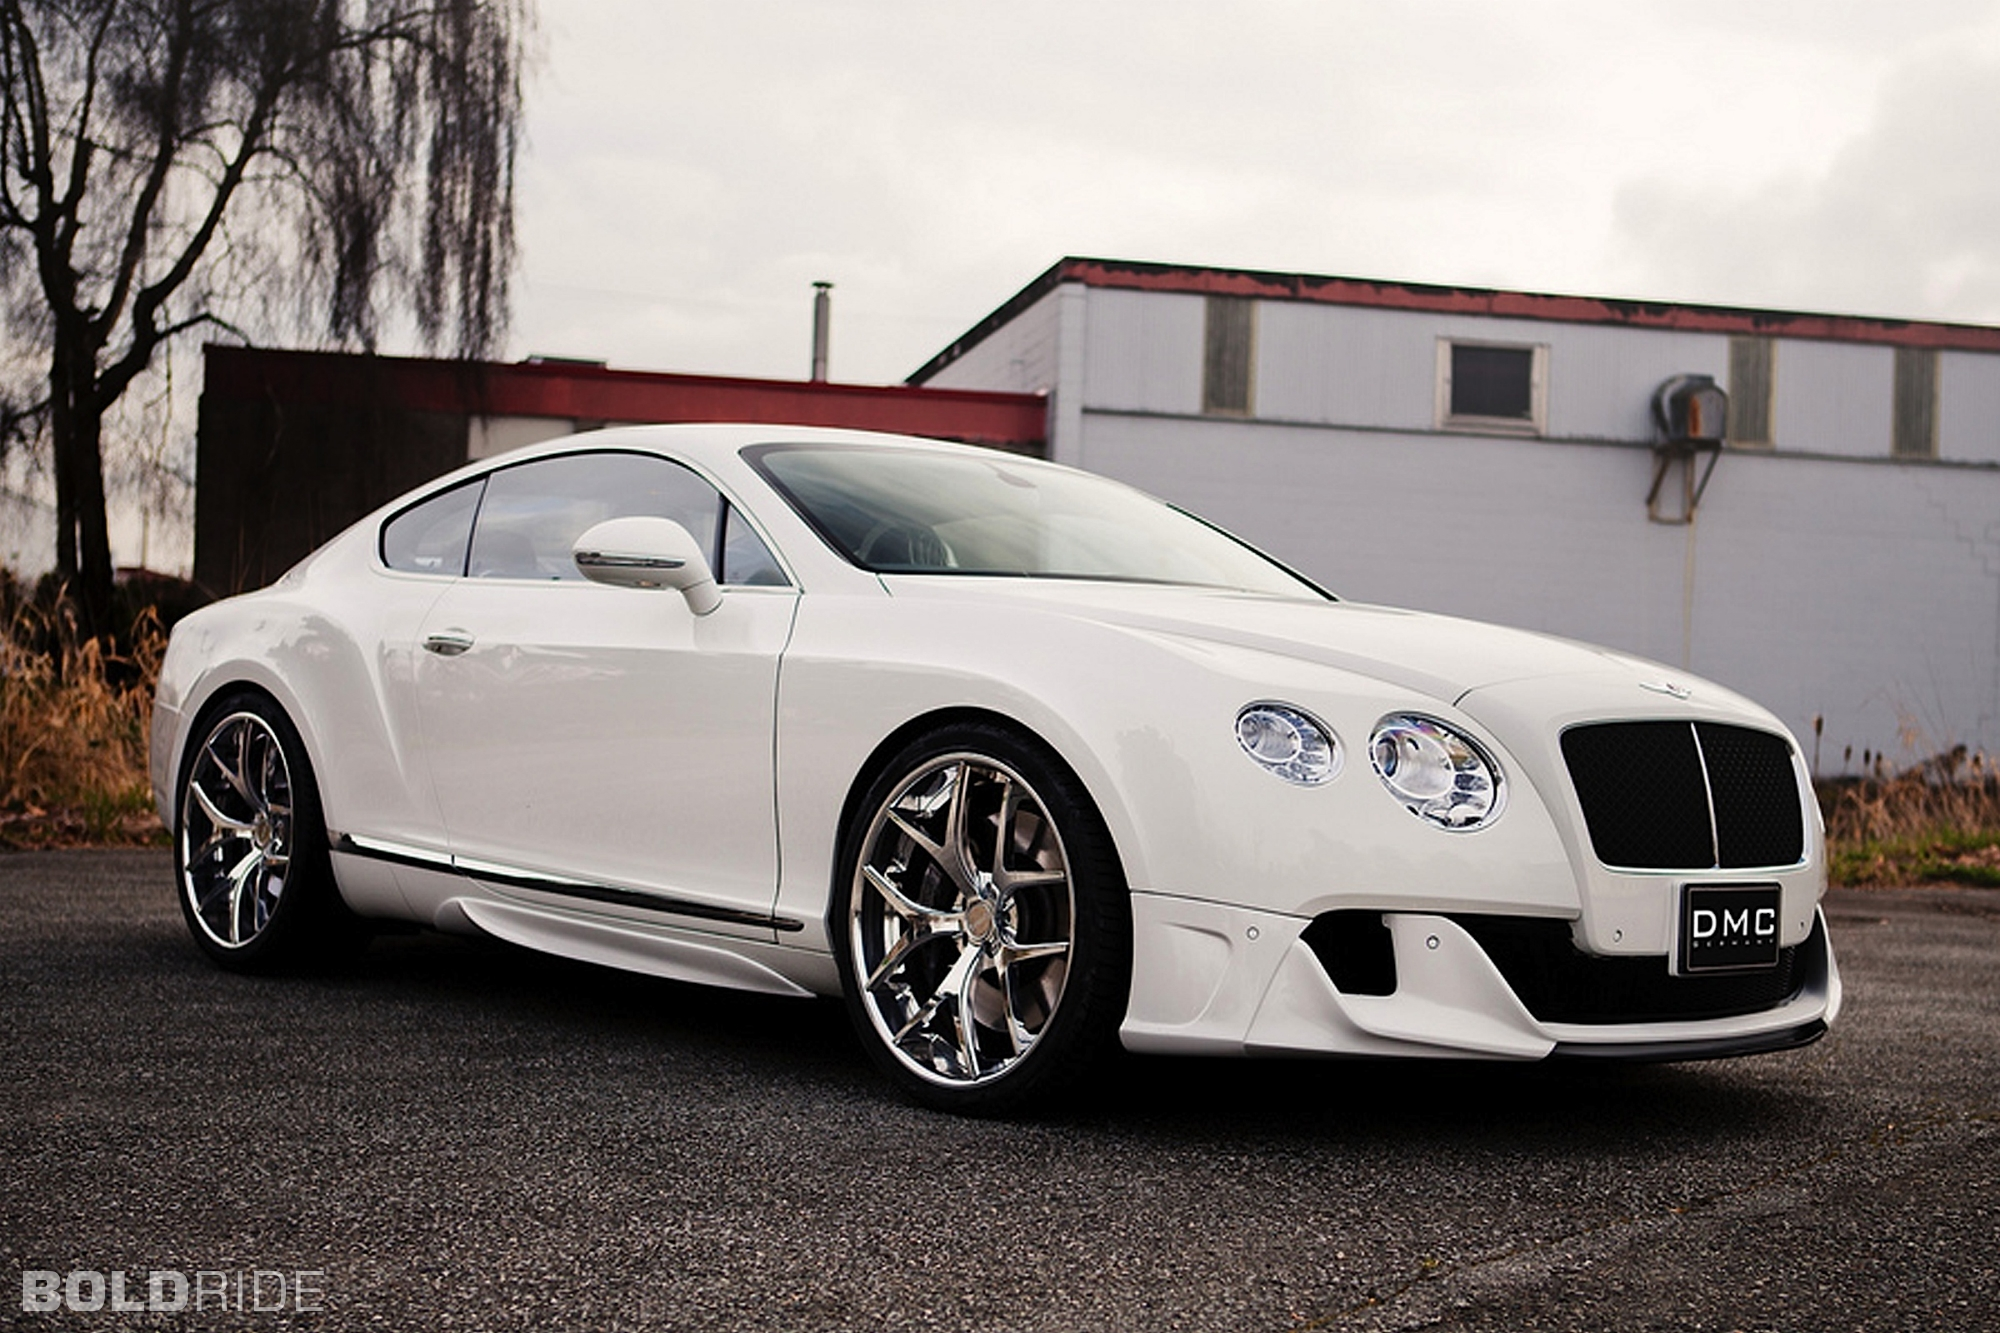 2013 DMC Bentley Continental GTC Duro 2000 x 1333